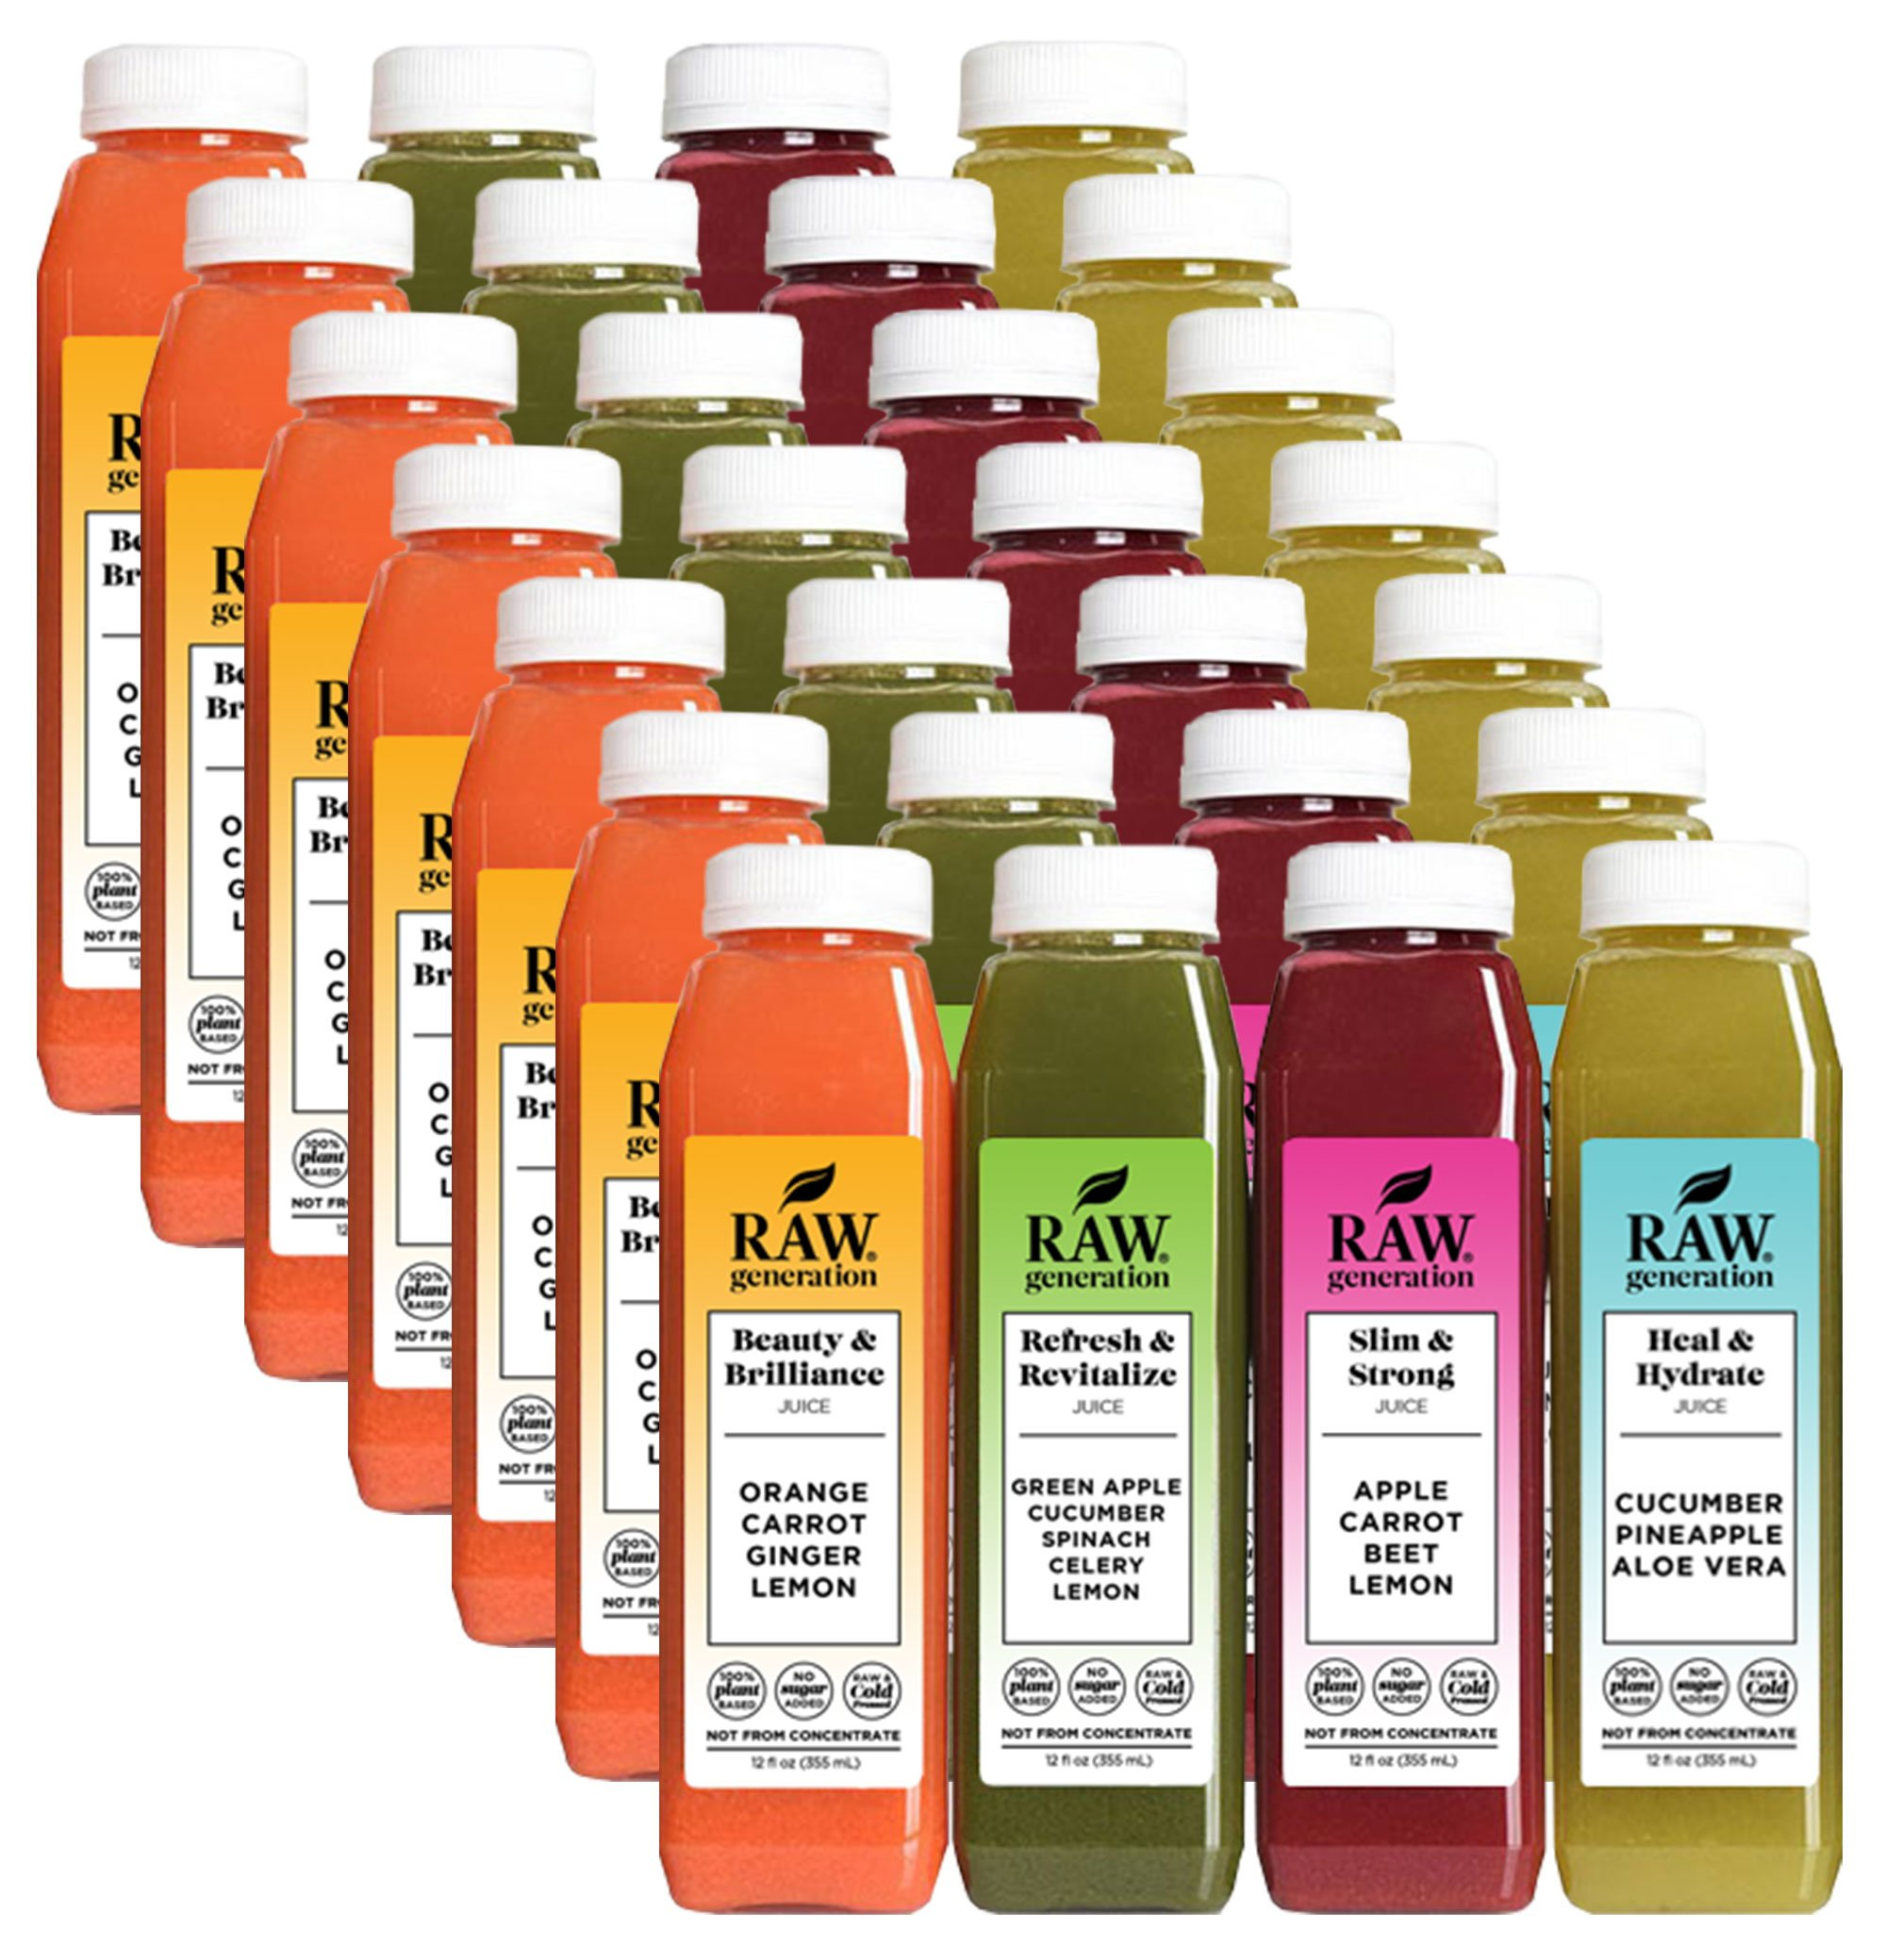 Raw Generation 80/20 Juice Cleanse - 7 Day Cleanse / You Can Eat While You Juice Cleanse / 100% Raw Juice